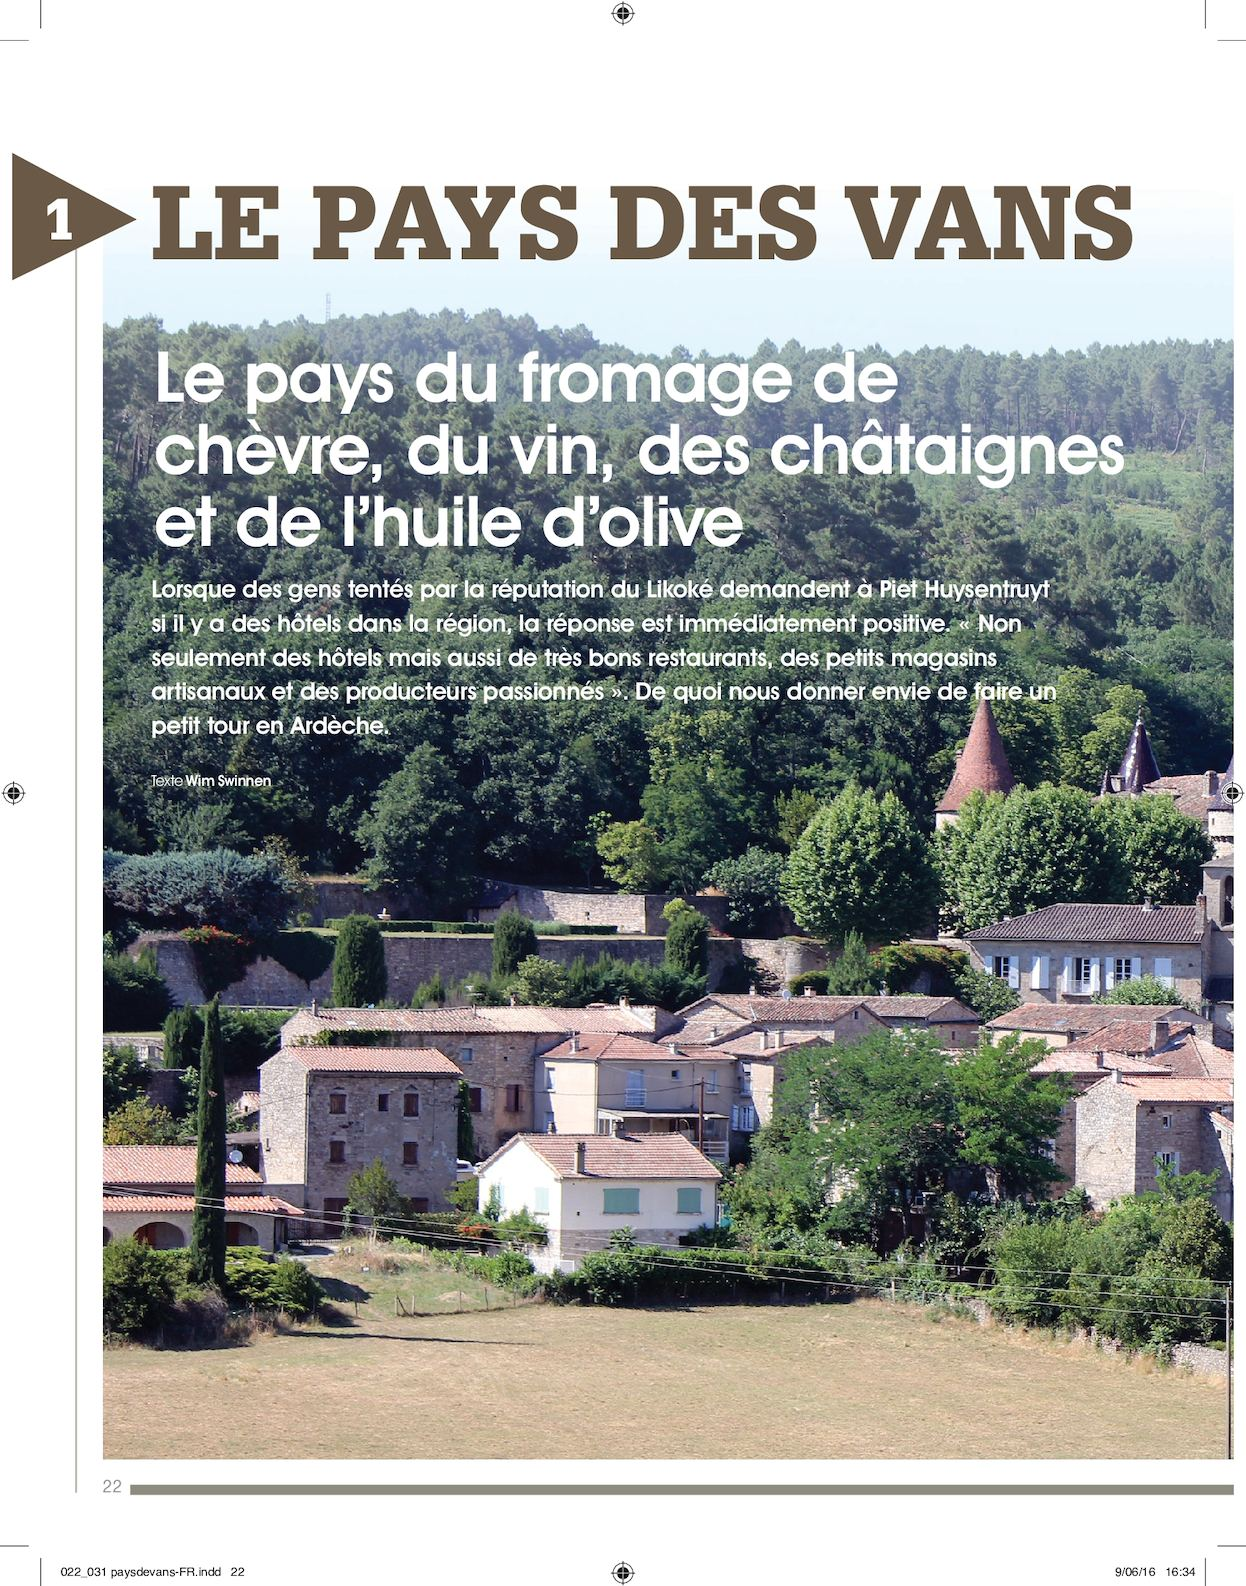 Calam o article de presse magazine culinaire ambiance for Article culinaire